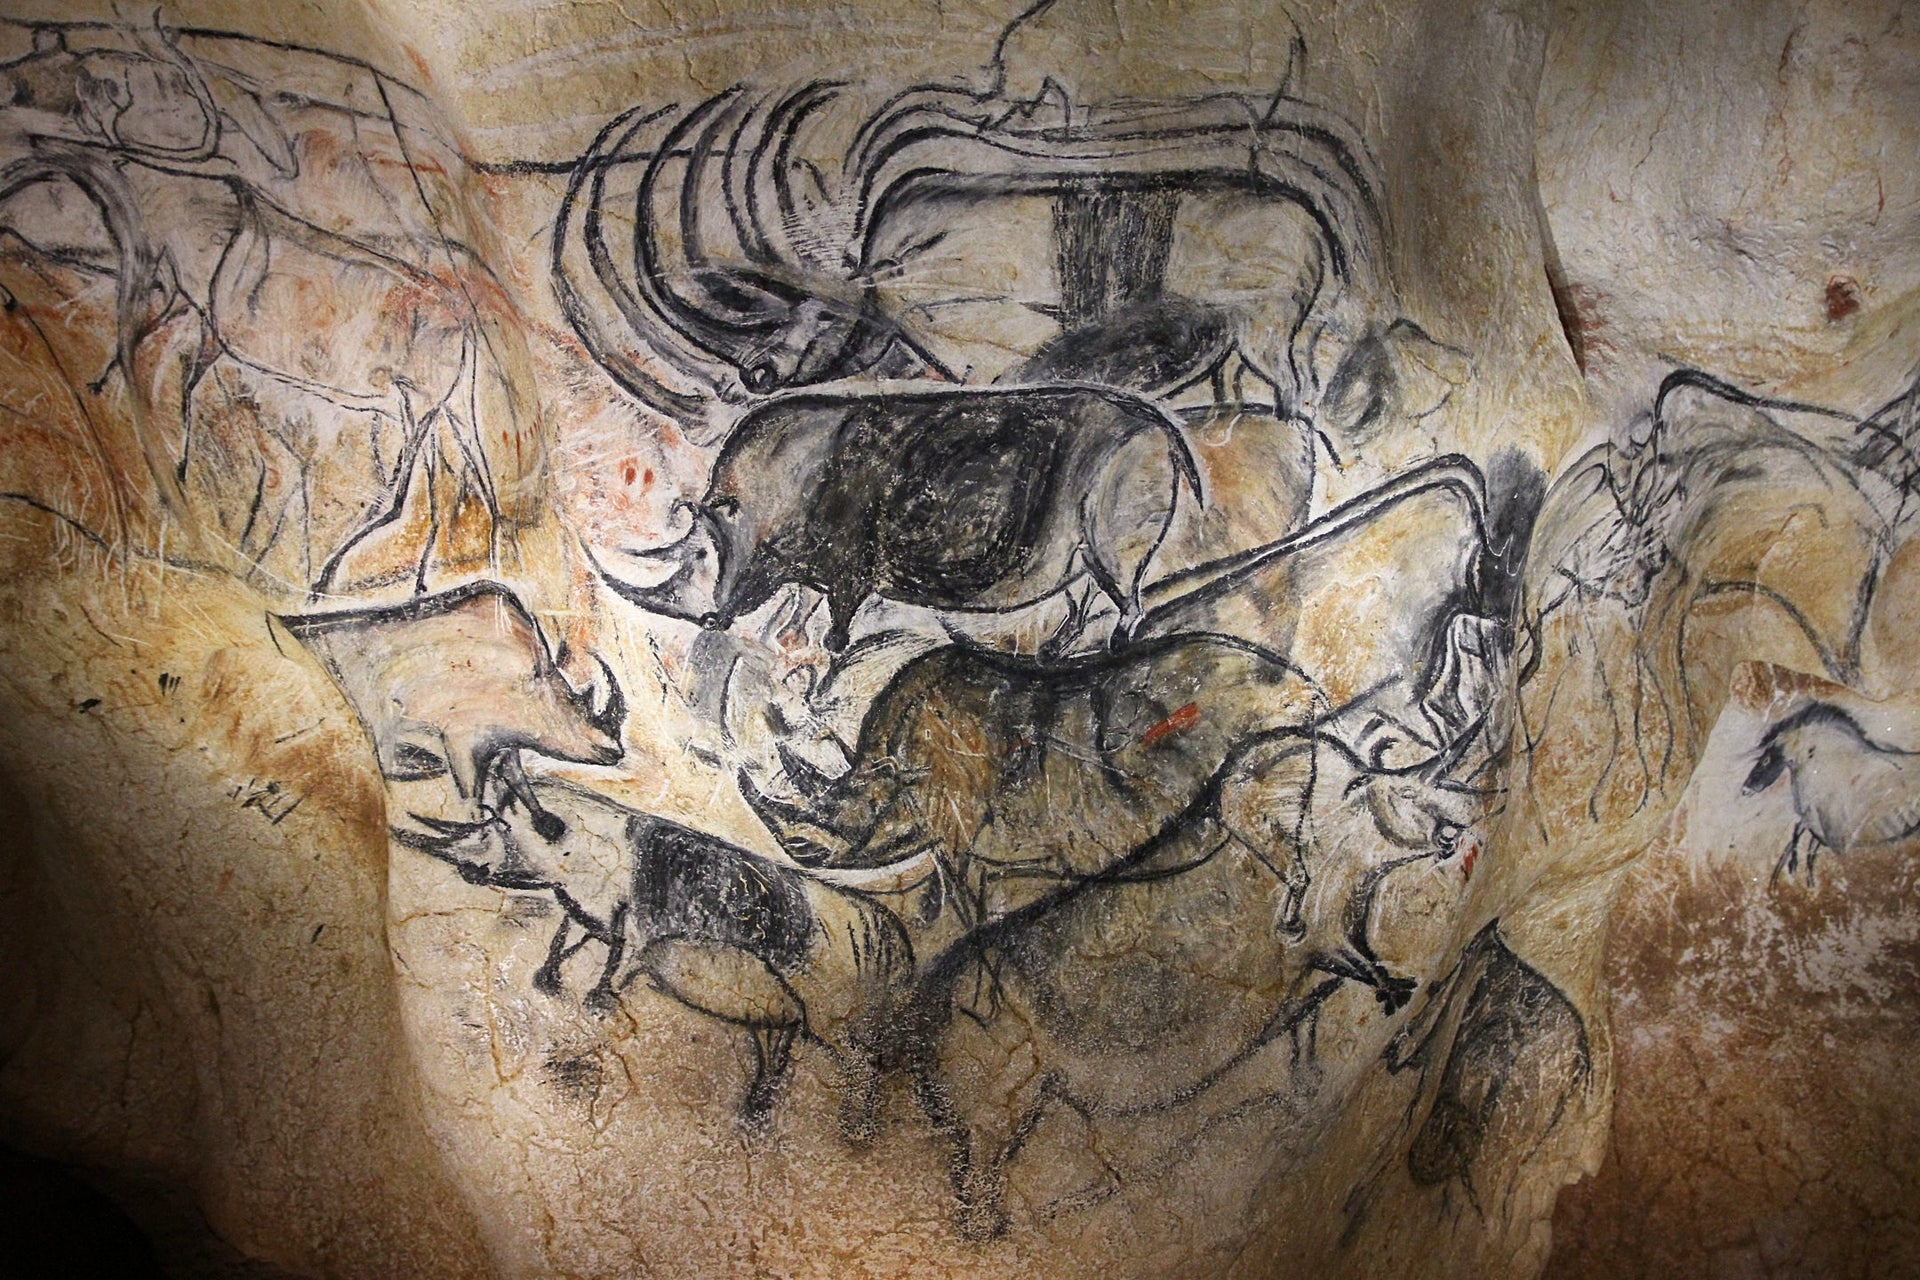 Aurignacian-era paintings from Chauvet cave, southern France, dated to more than 30,000 years ago: Rhinos.